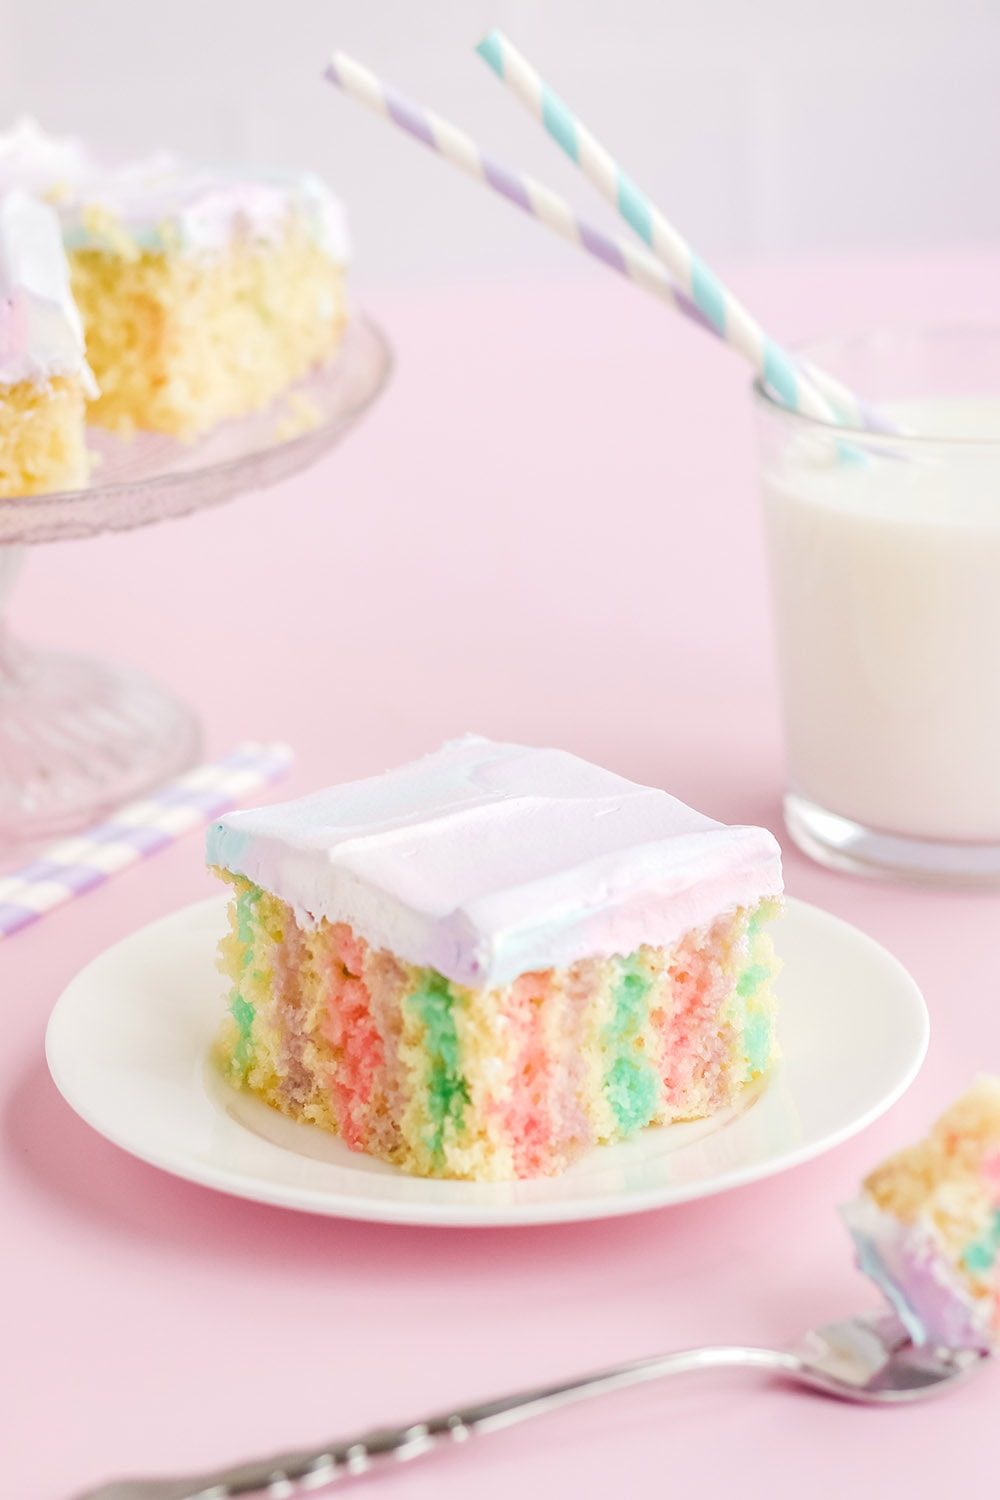 Colorful cake on a plate with milk and more cake in the background.